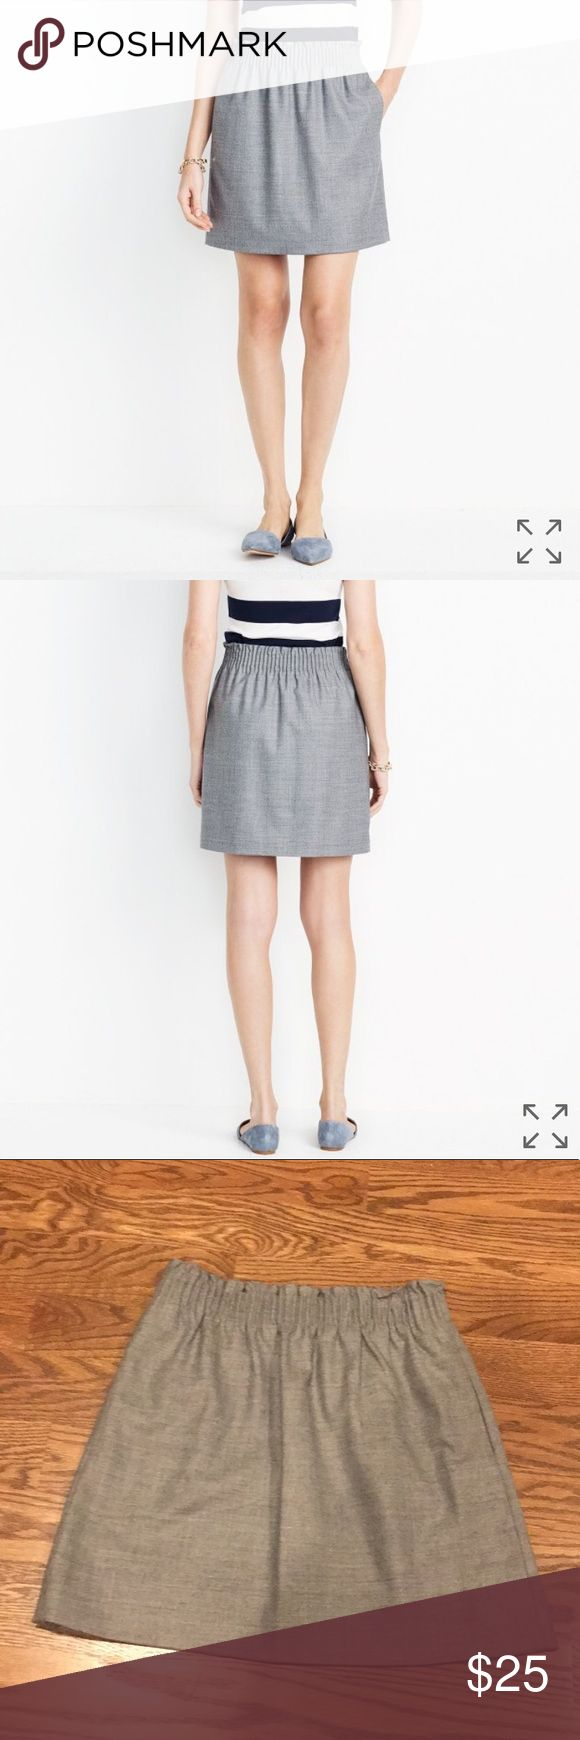 J.Crew Factory Wool Sidewalk Skirt Perfect skirt for fall and winter! Adorable wool/poly/viscose skirt. New with tags, never been worn.   Elastic waistband. Lined, with pockets. Dry clean.   // Smoke free, pet free home. No trades. Reasonable offers welcome. // J. Crew Factory Skirts